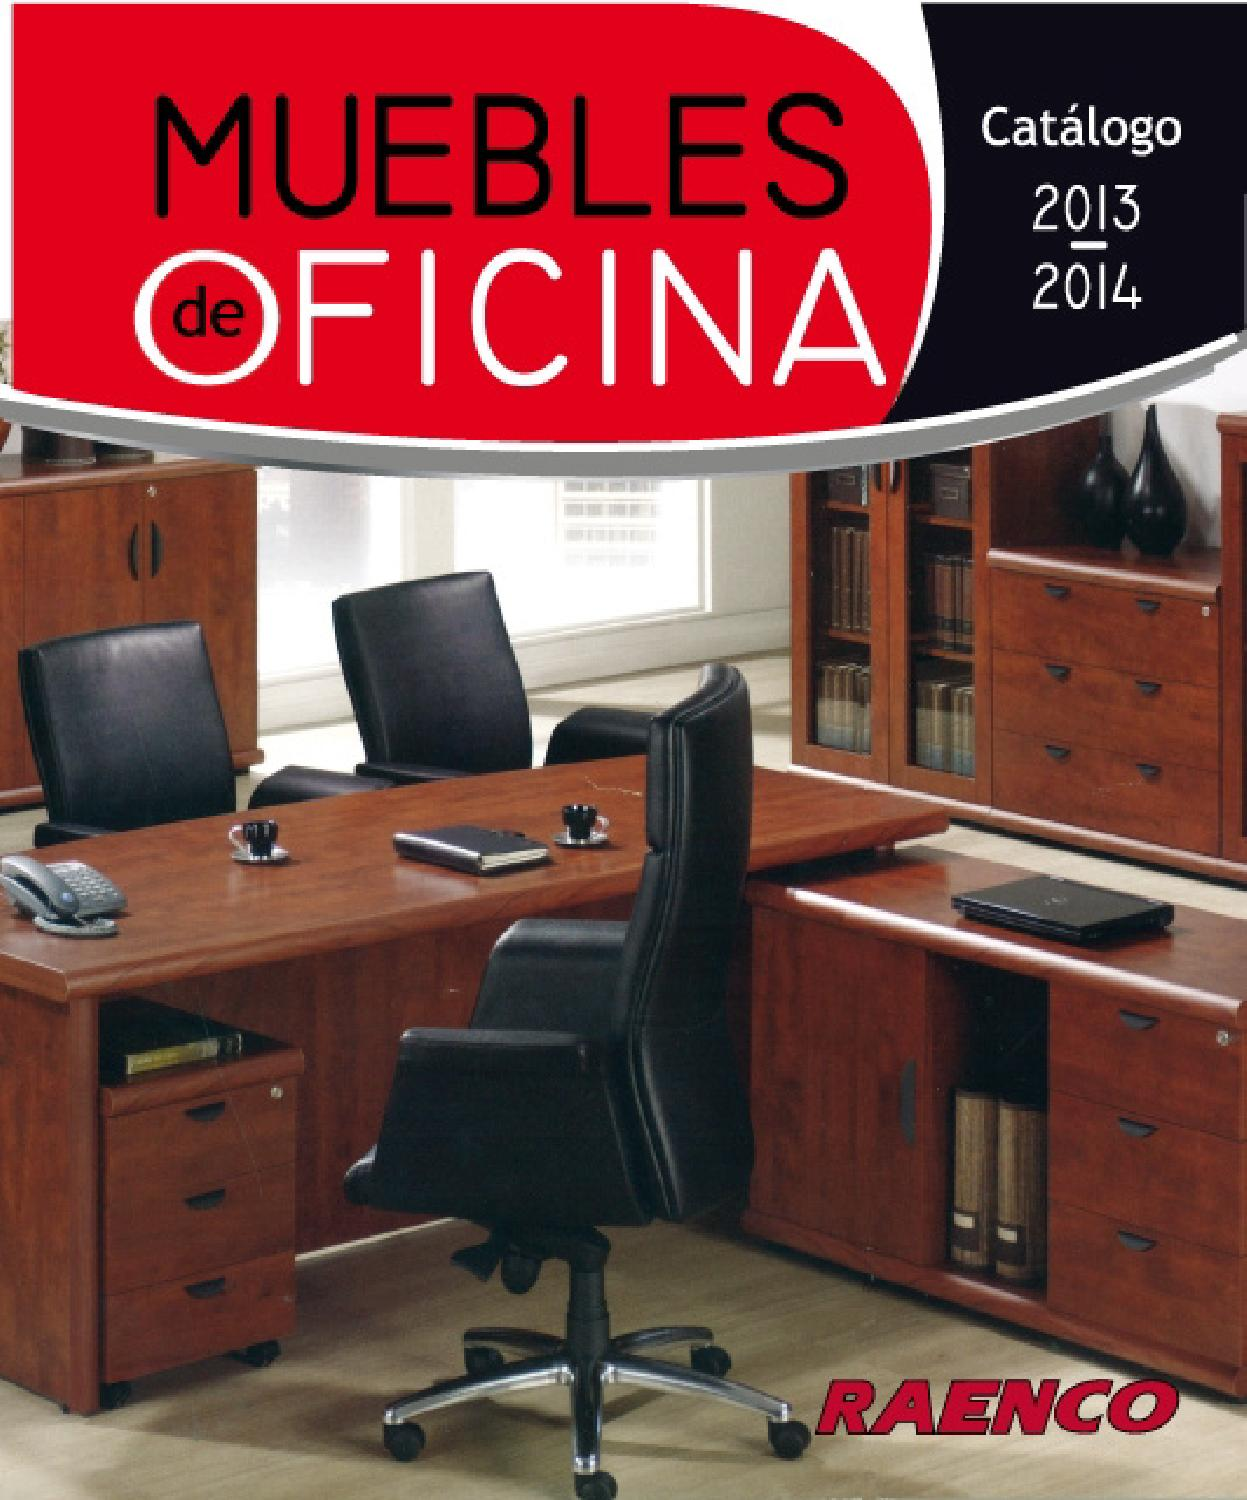 Cat logo raenco oficina by interiores estilo issuu for Muebles de oficina neuquen esmet